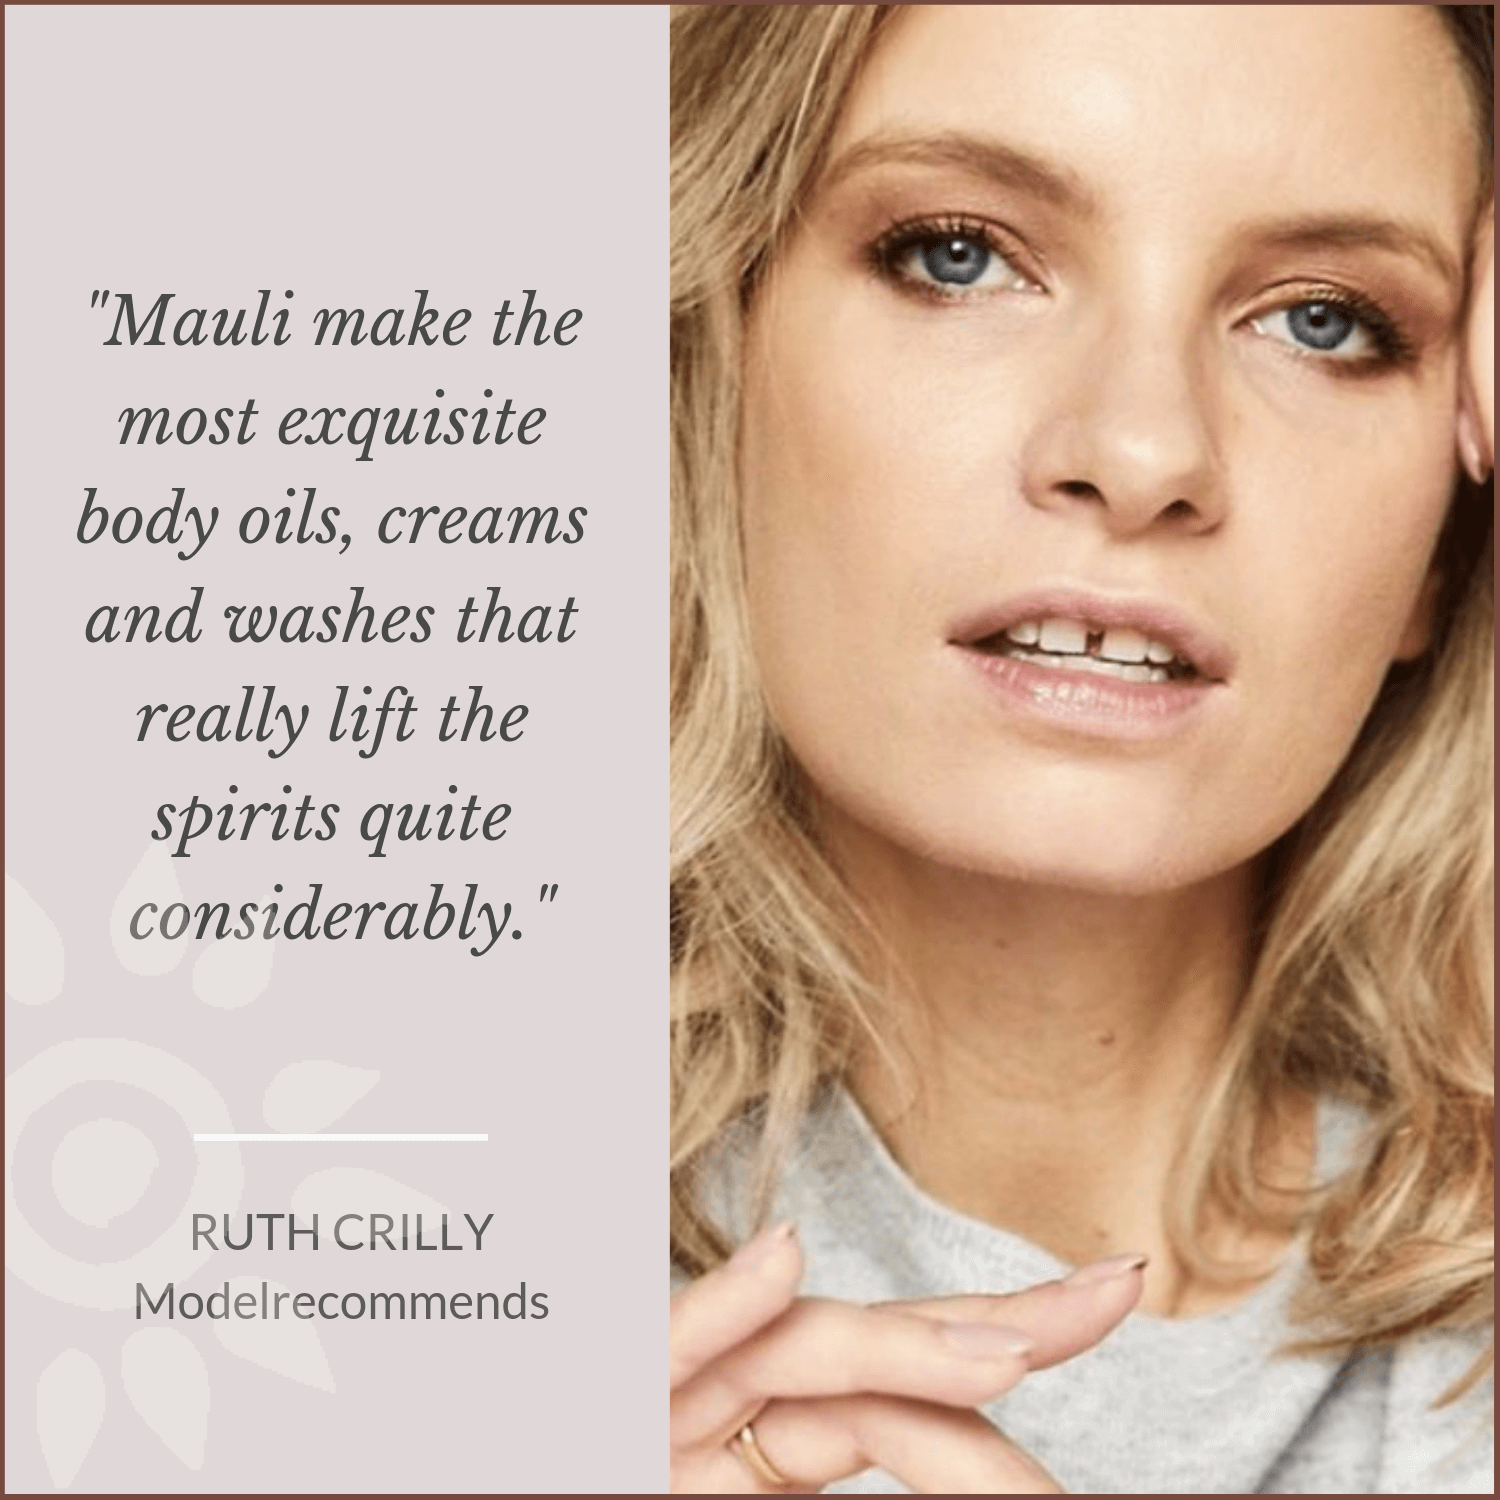 Ruth Crilly for Mauli love